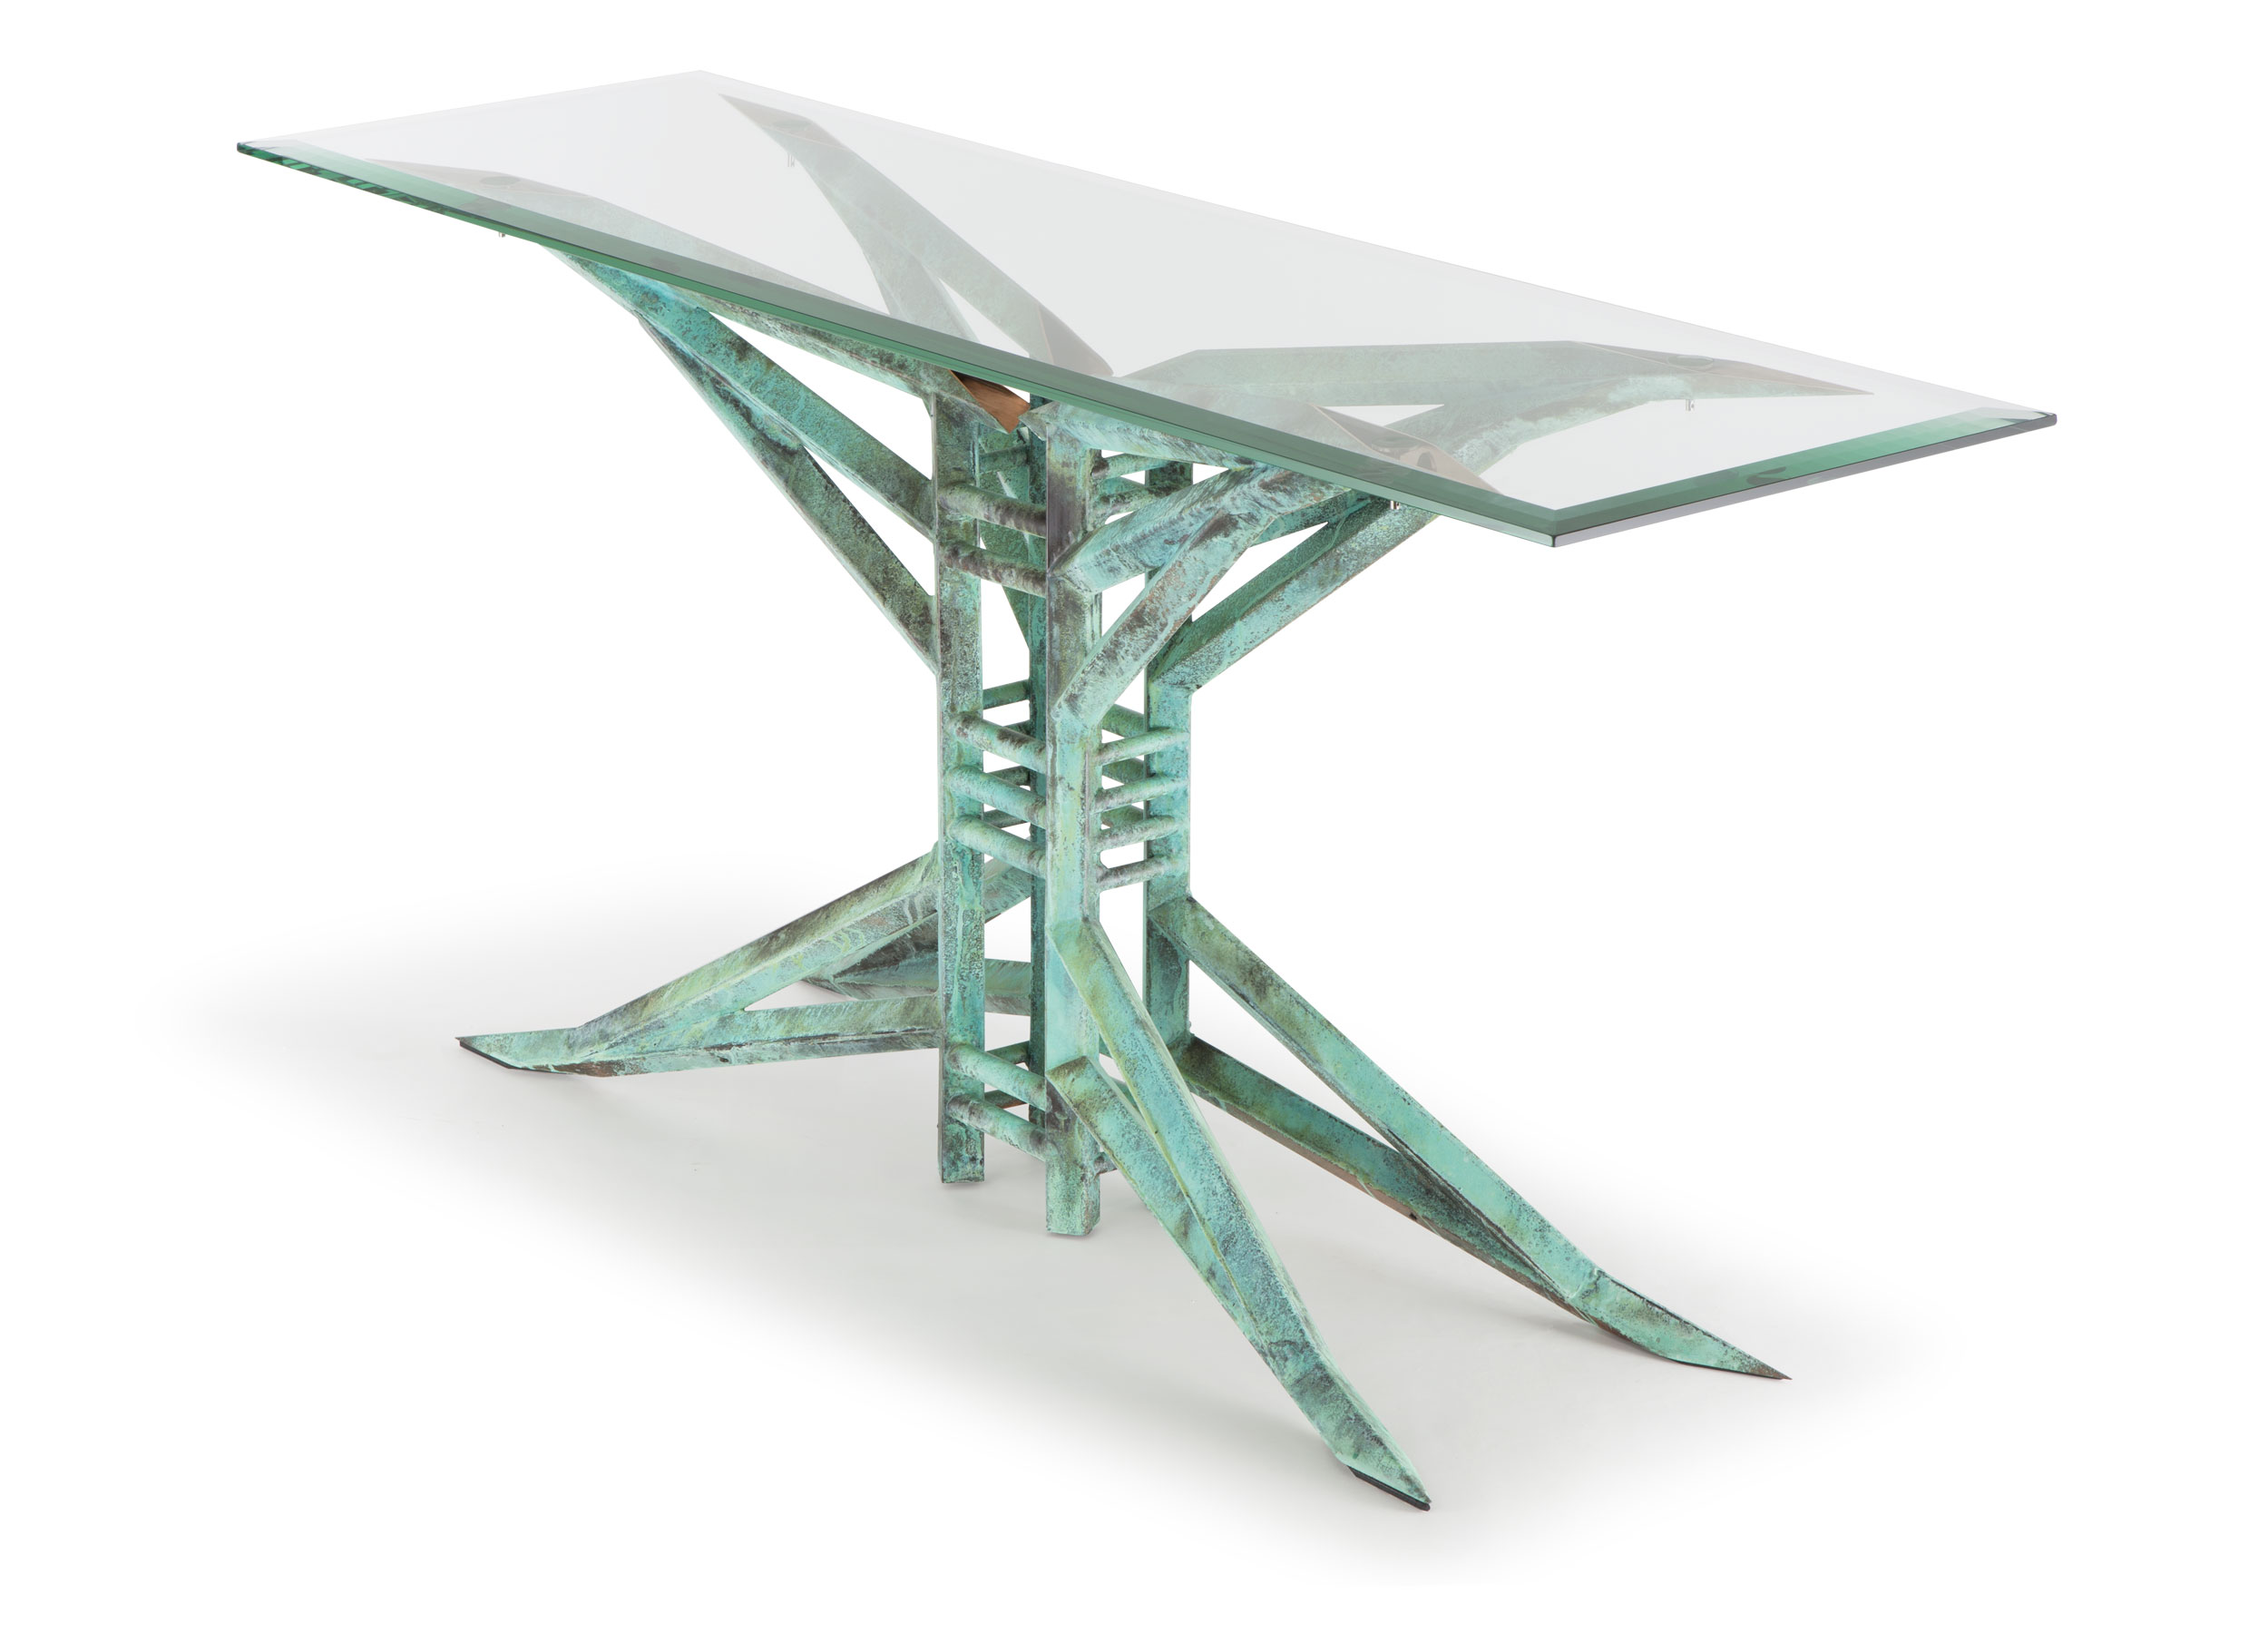 custom copper console table - palermo by Scott Yocco